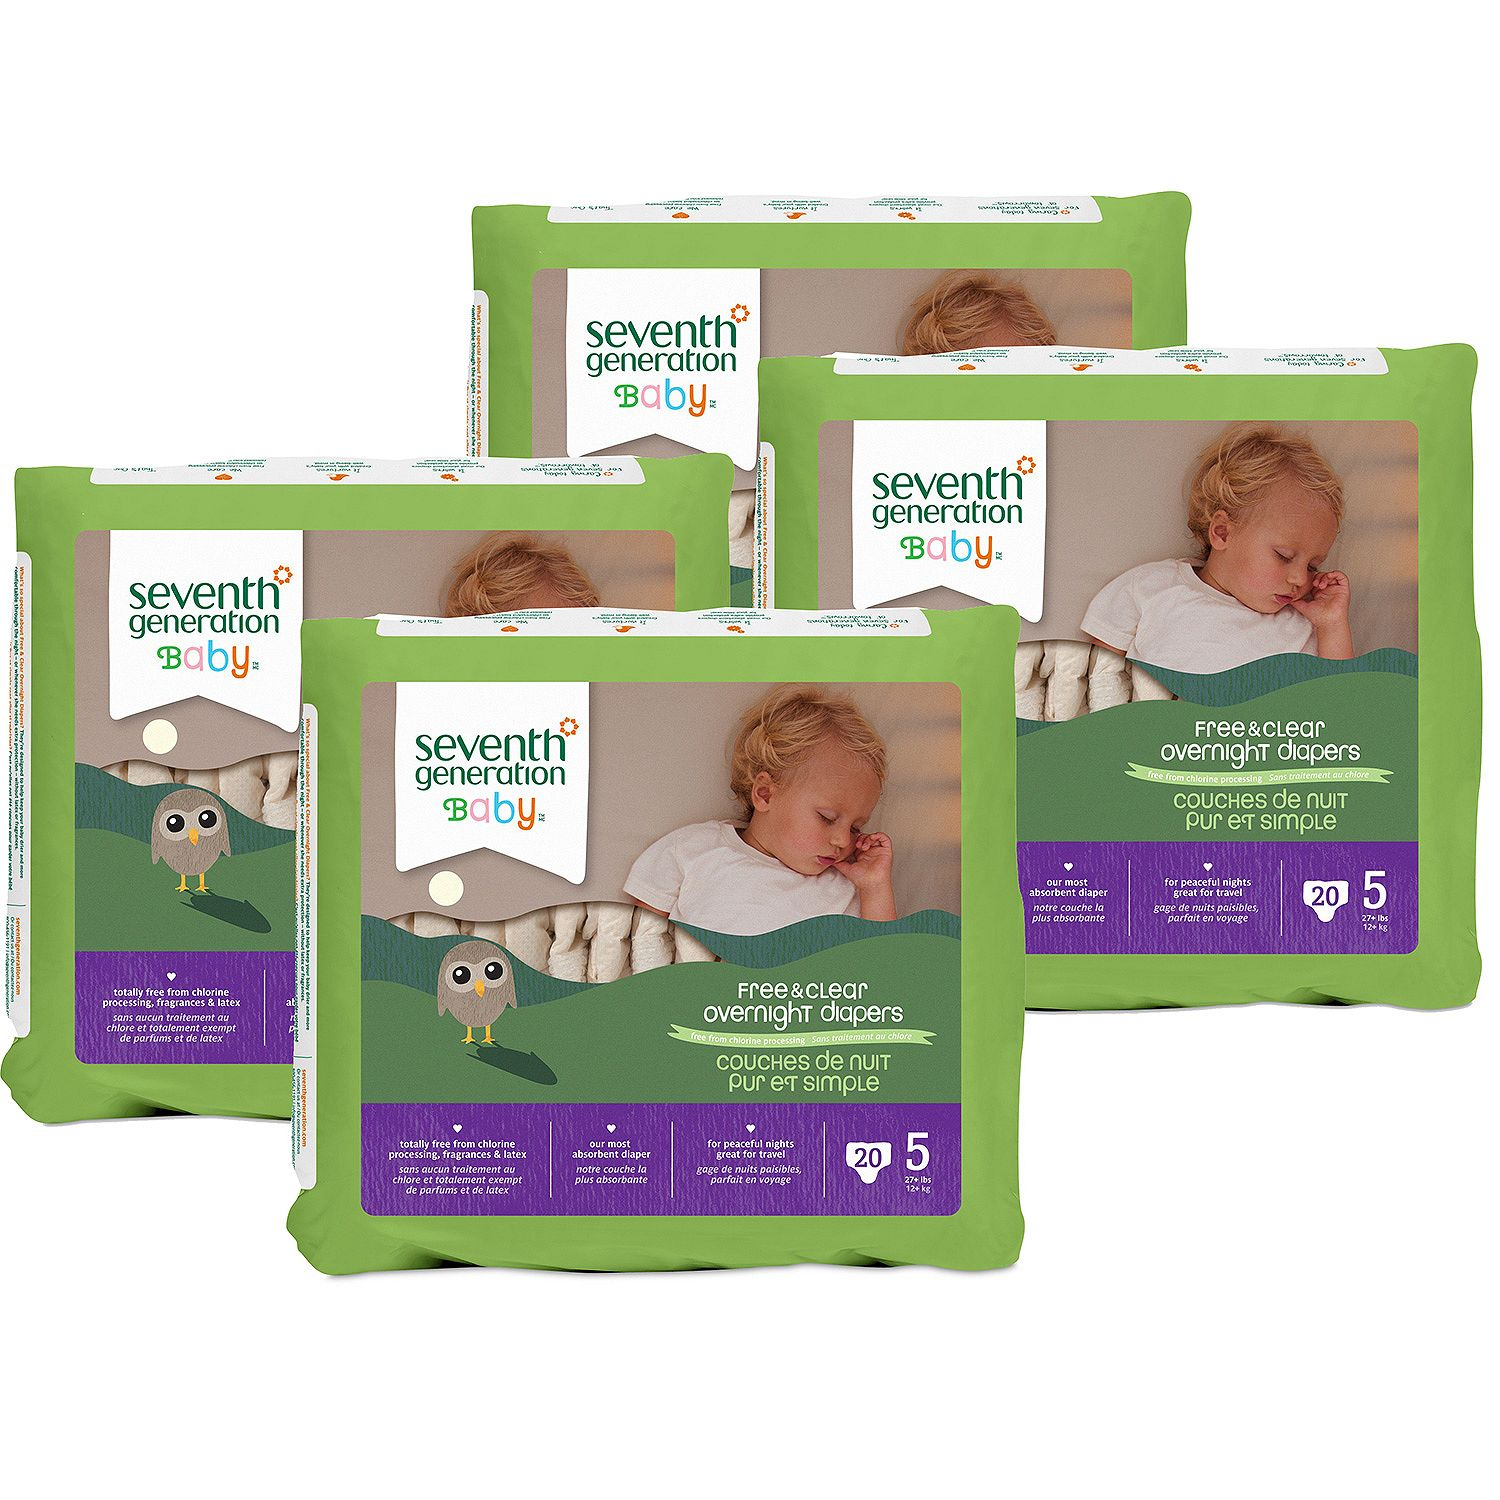 [Best Branded Diapers]-Seventh Generation Free & Clear Overnight Diapers Size Stage 5 - 20 ct. - Bulk Qty, Free Shipping - Comfortable, Soft, No licking & Good nite Diapers